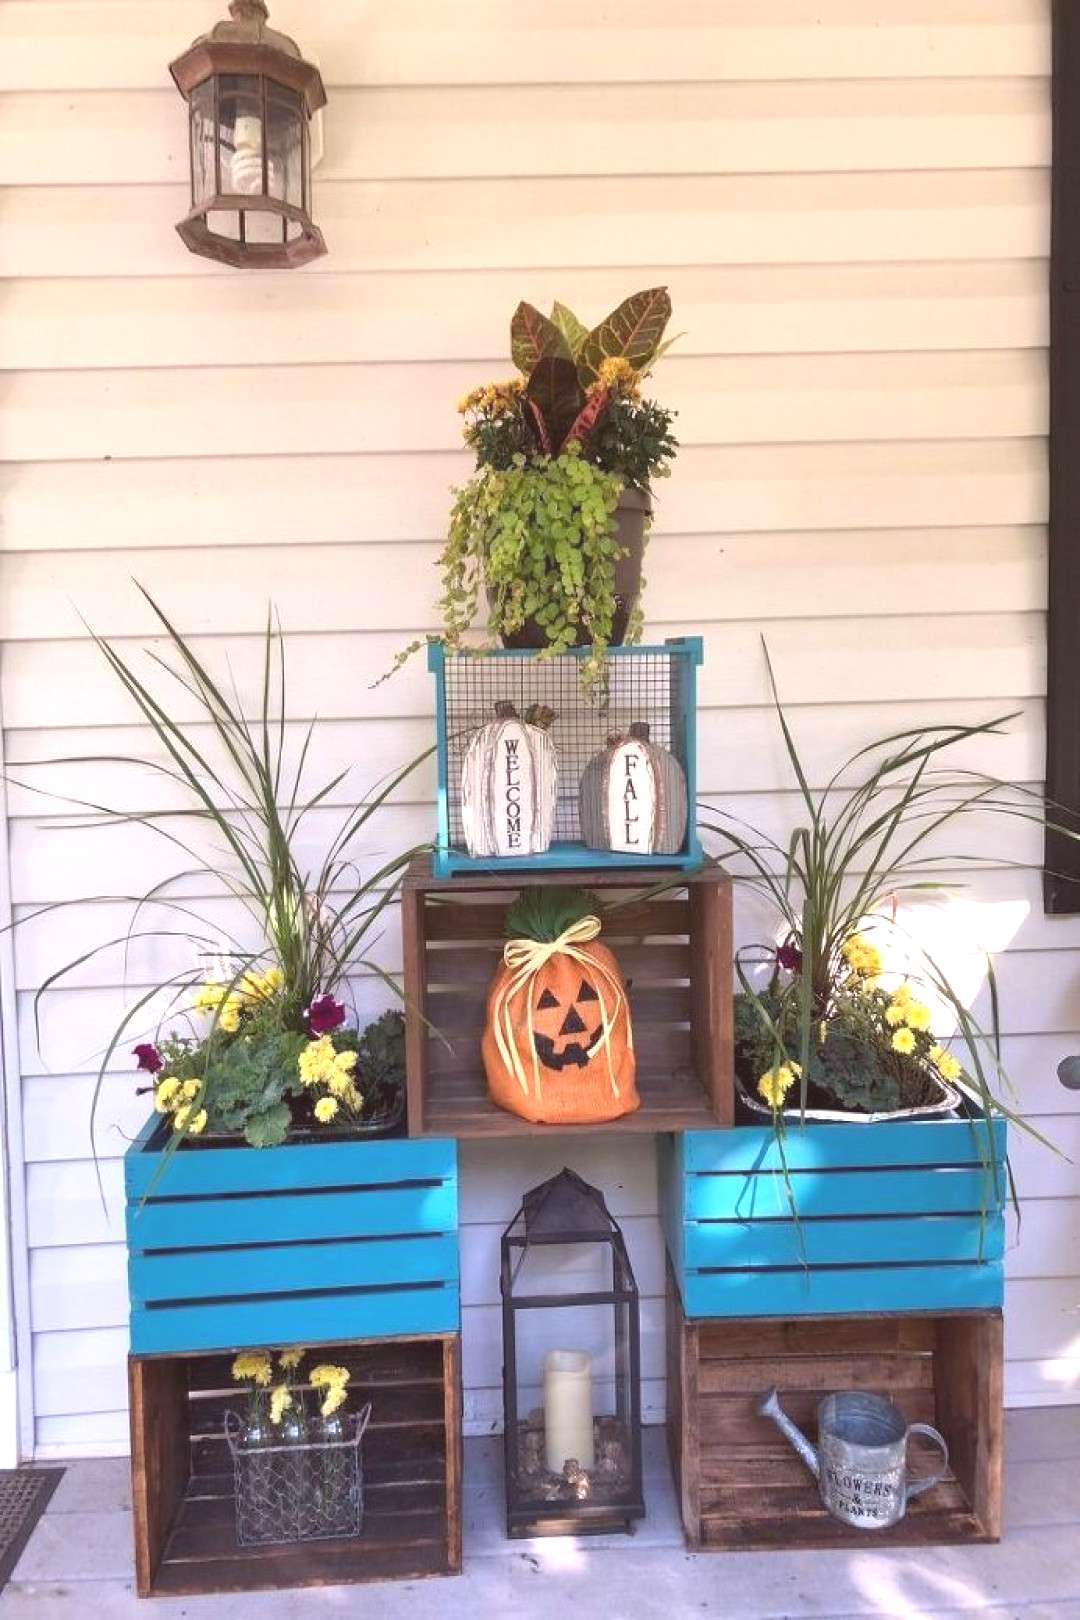 Wooden Crates as Fall Planters - Front Door / Porch Refresh -  wooden crates as fall planters front